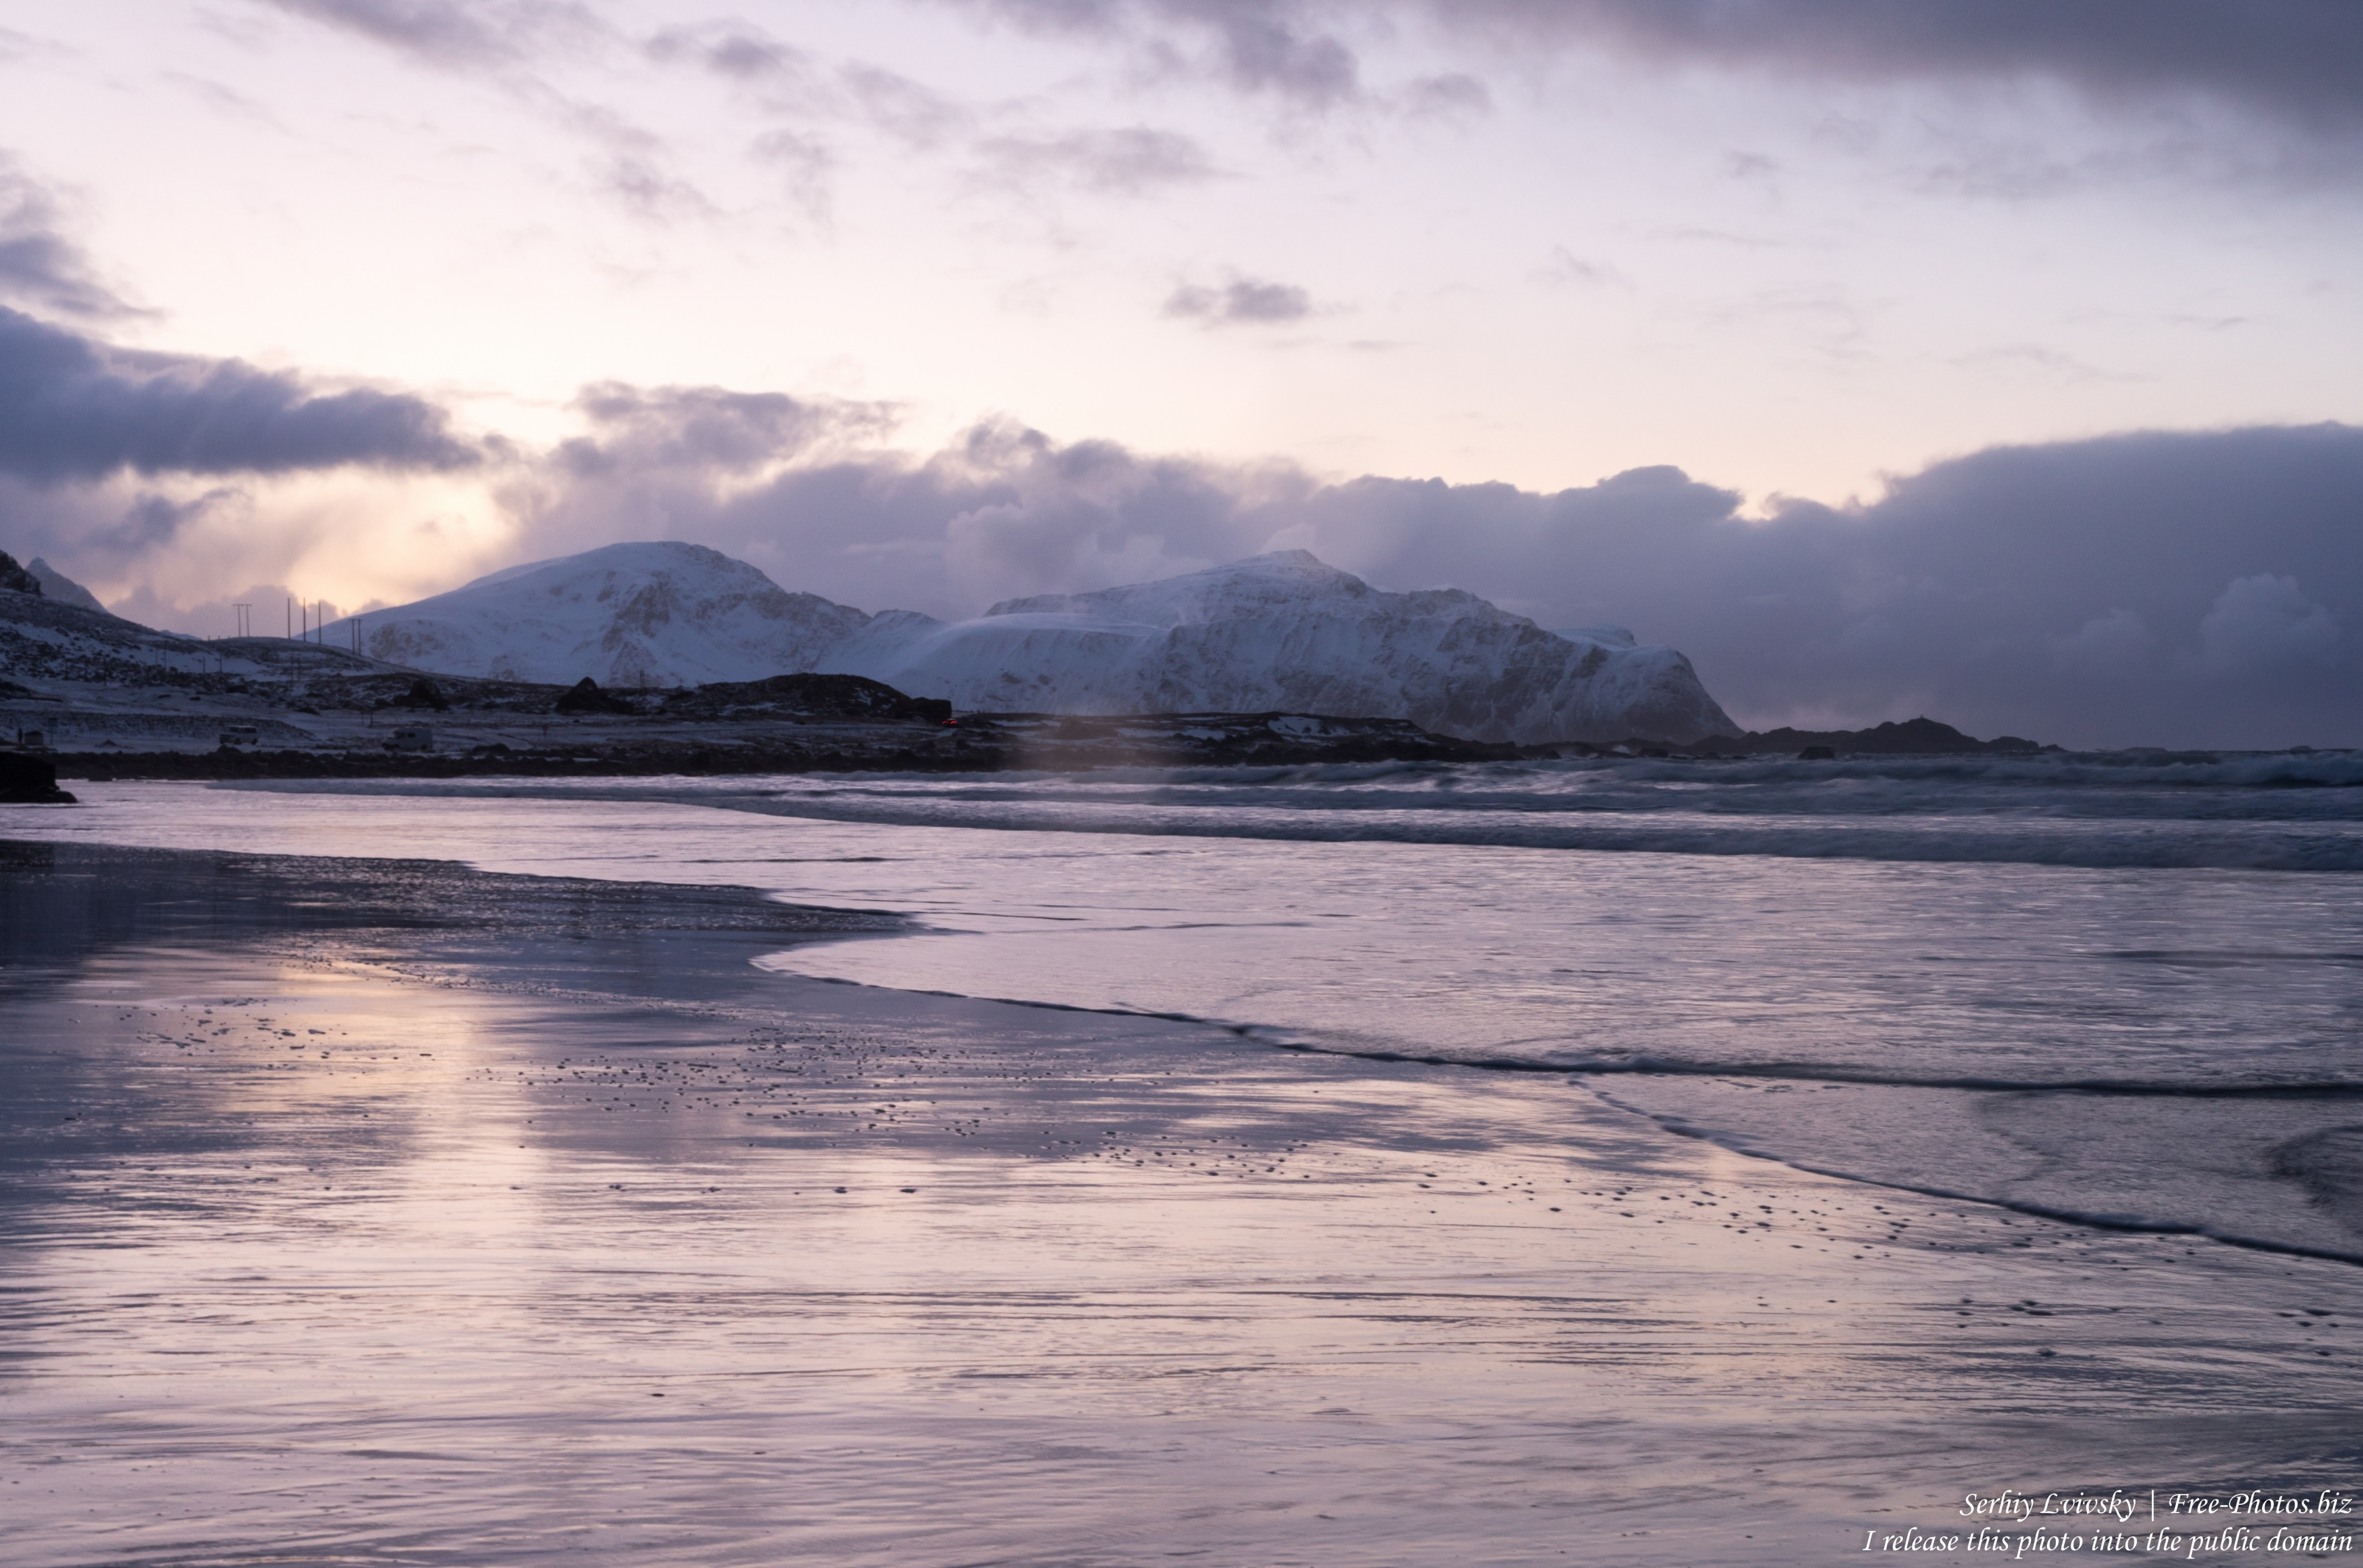 Skagsanden beach, Norway, photographed in February 2020 by Serhiy Lvivsky, picture 20